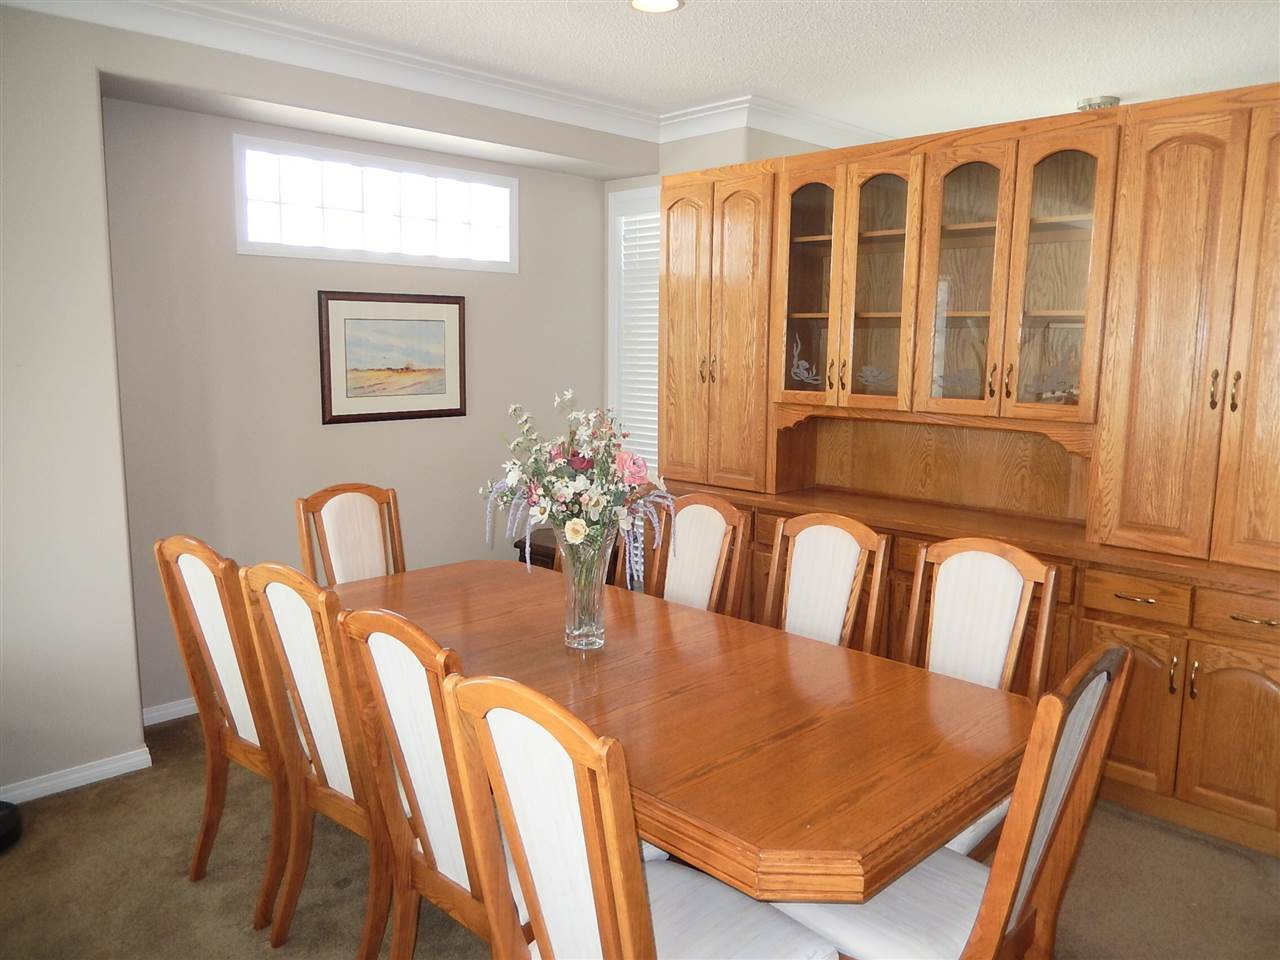 Formal dining room open to the living/kitchen.